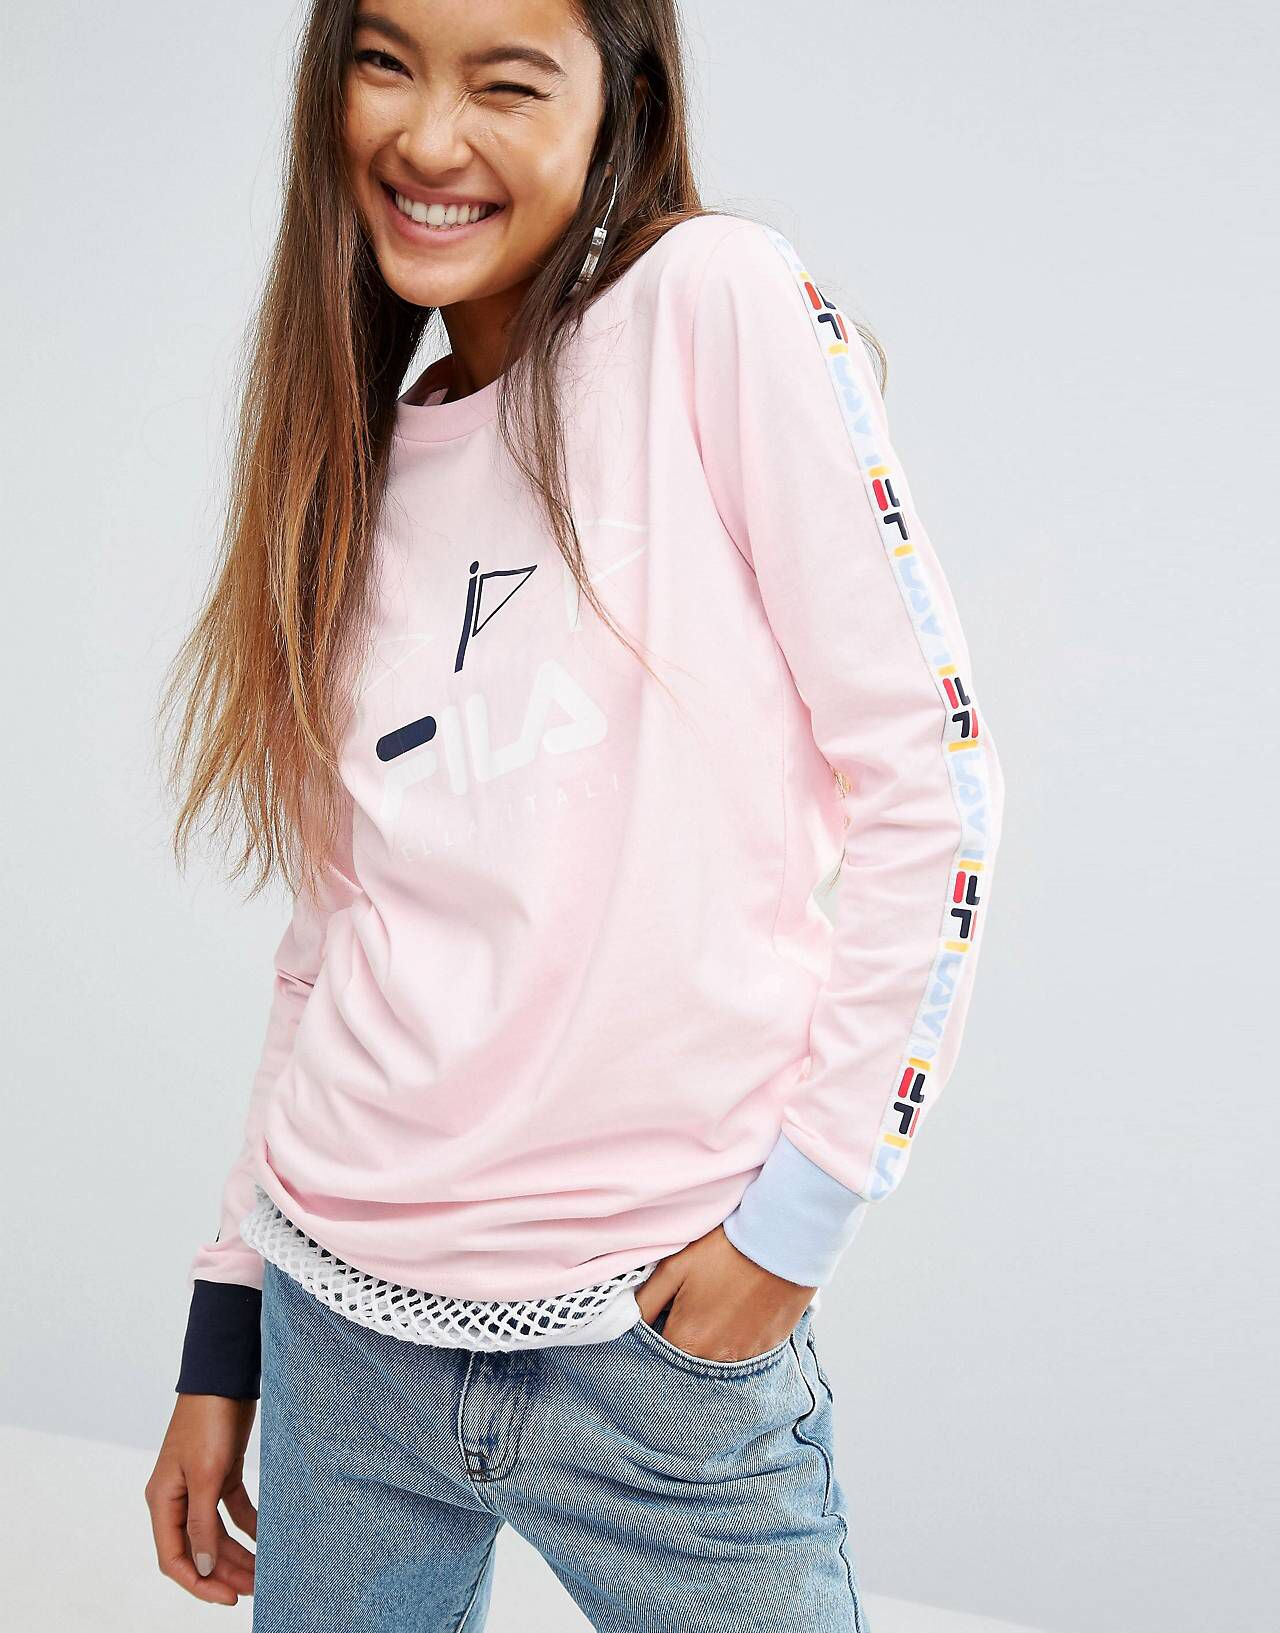 LOVE this from ASOS!